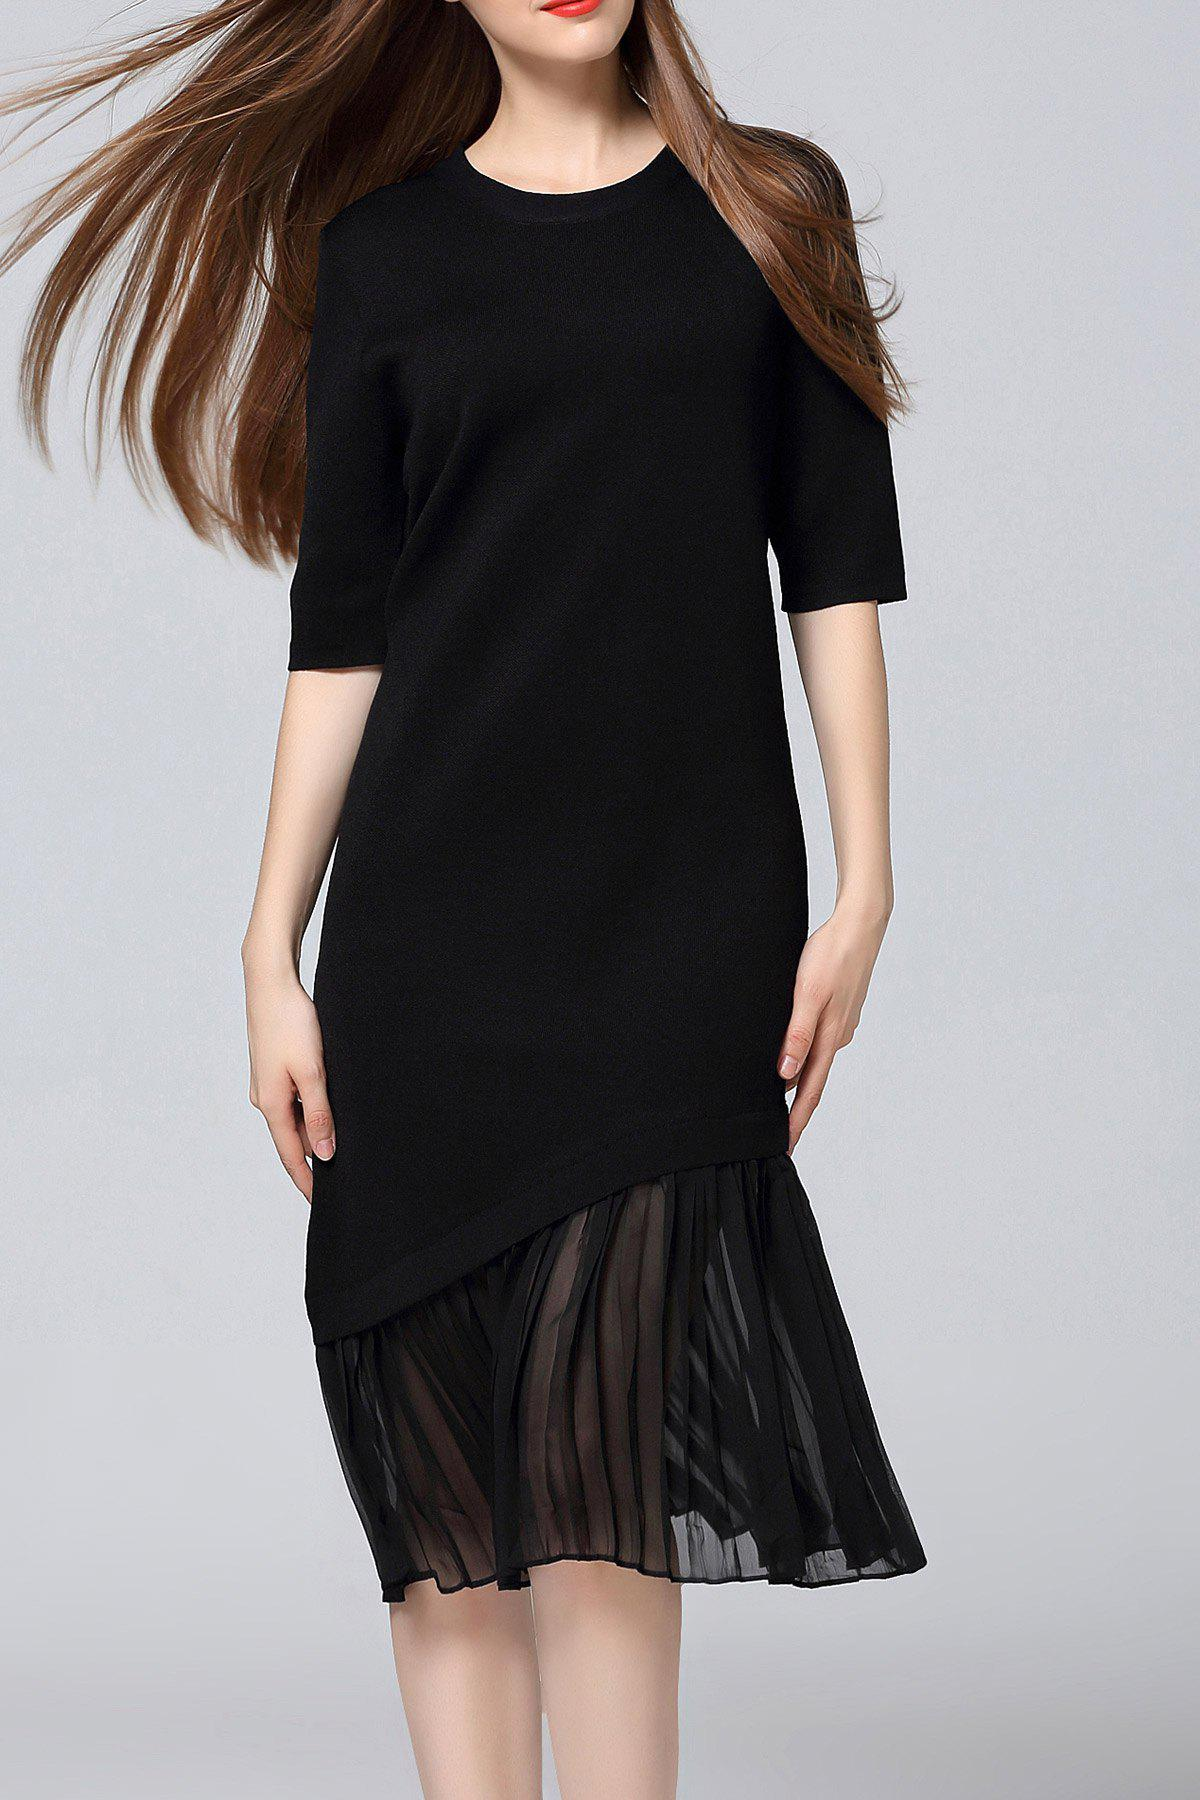 Buy Pleated Sweater Midi Dress